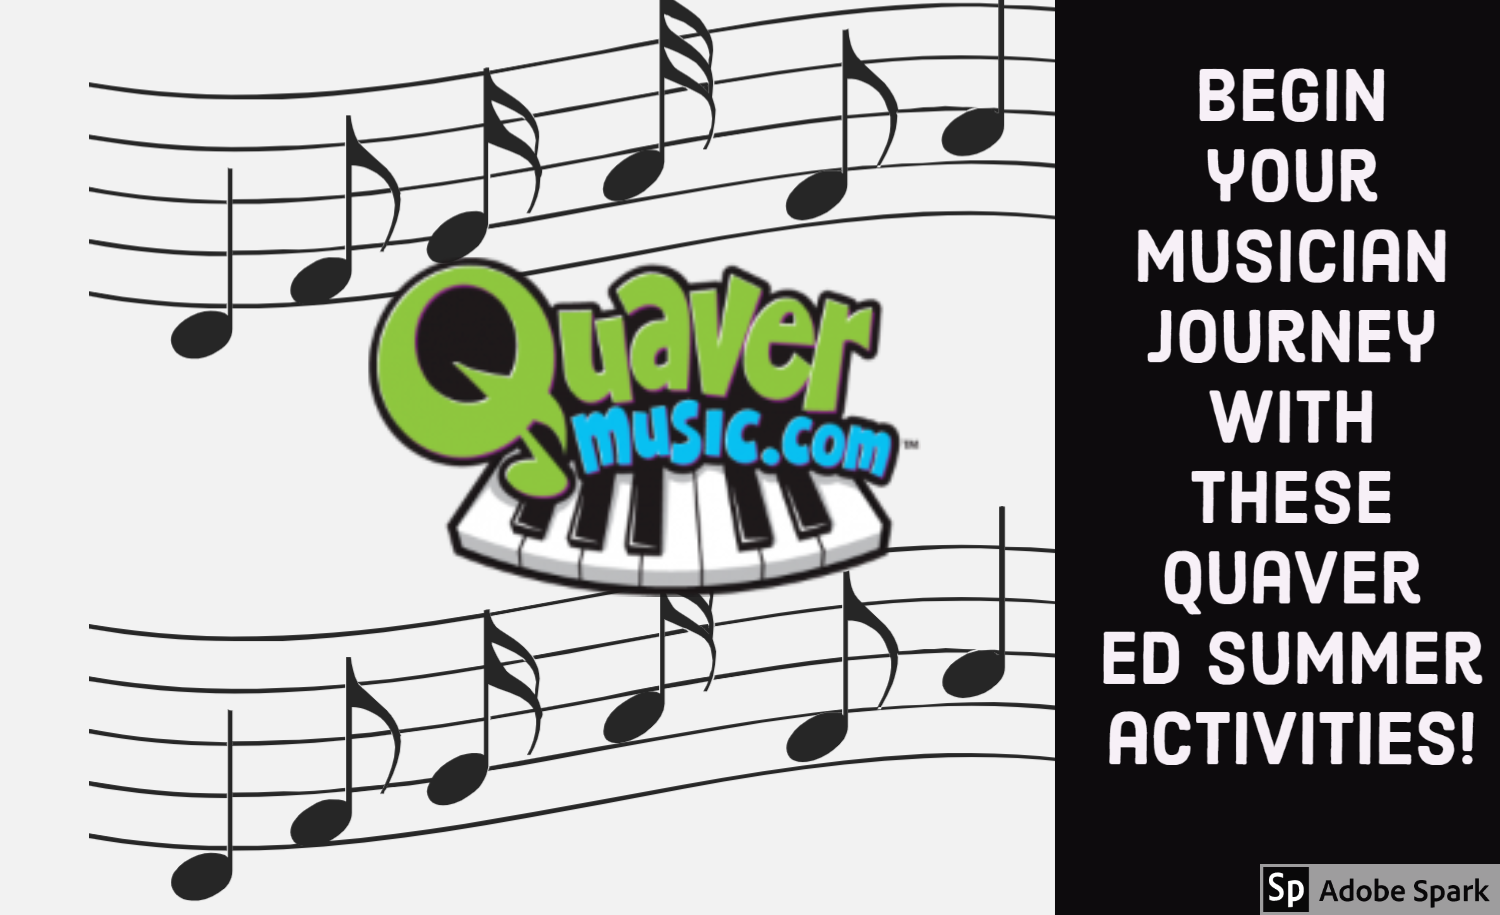 Image of Quaver ED Music summer activities announcement